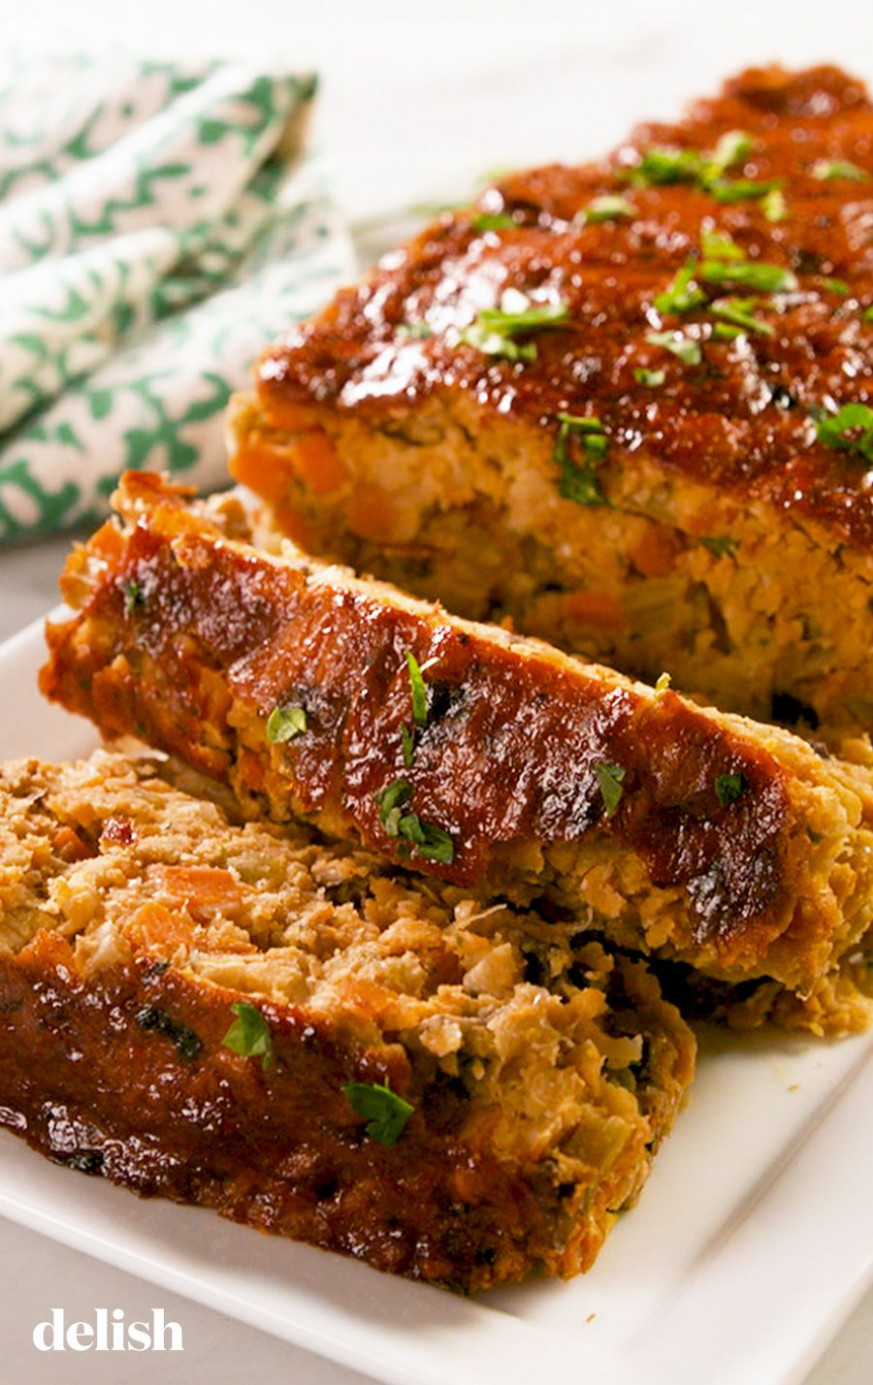 Best-Ever Vegan Meat Loaf - recipe vegetarian meatloaf